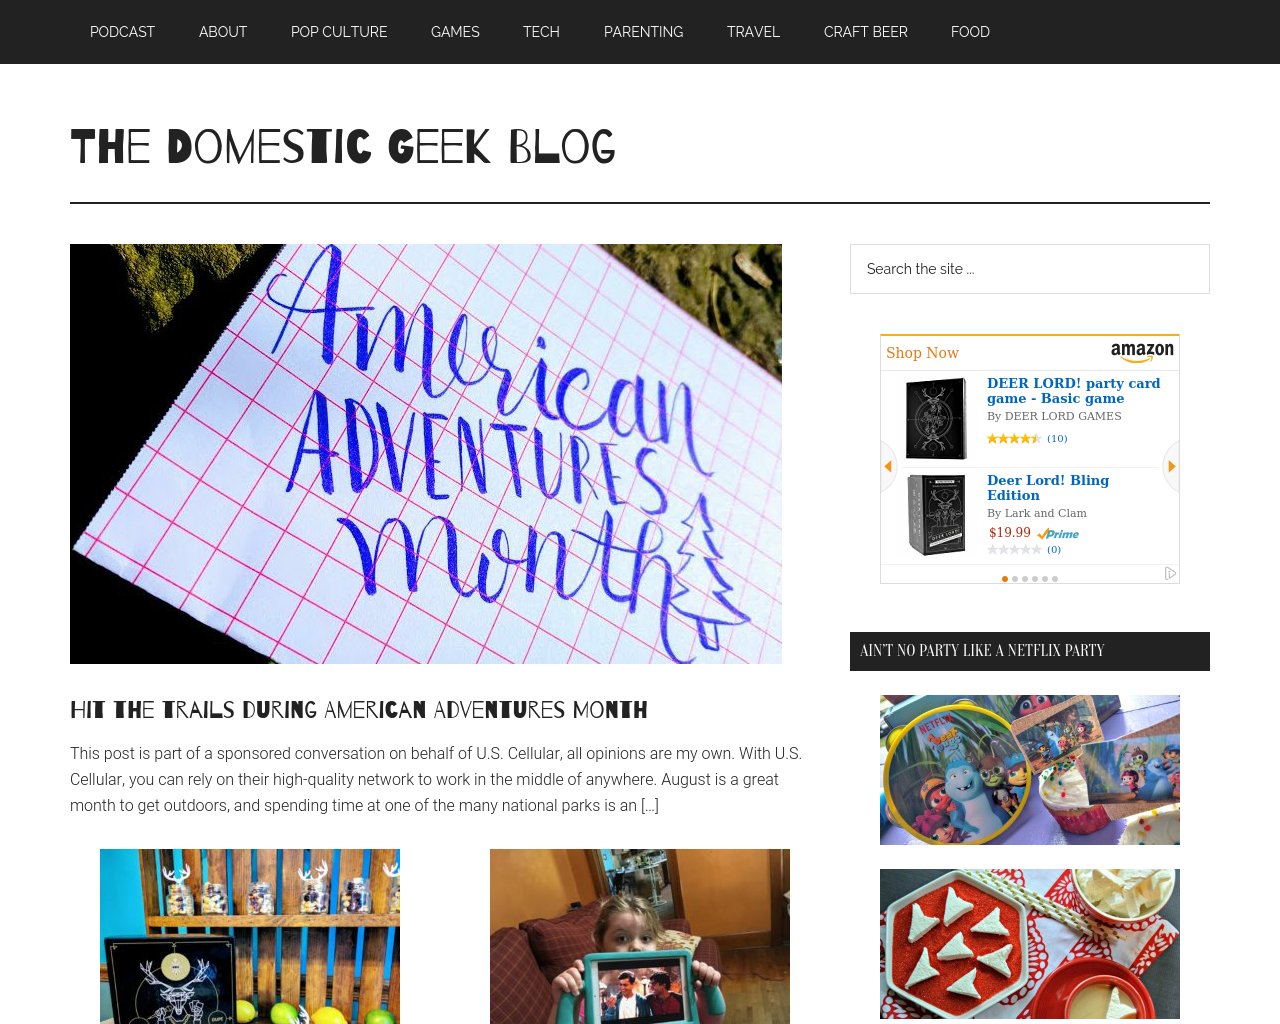 The-Domestic-Geek-Blog-Advertising-Reviews-Pricing